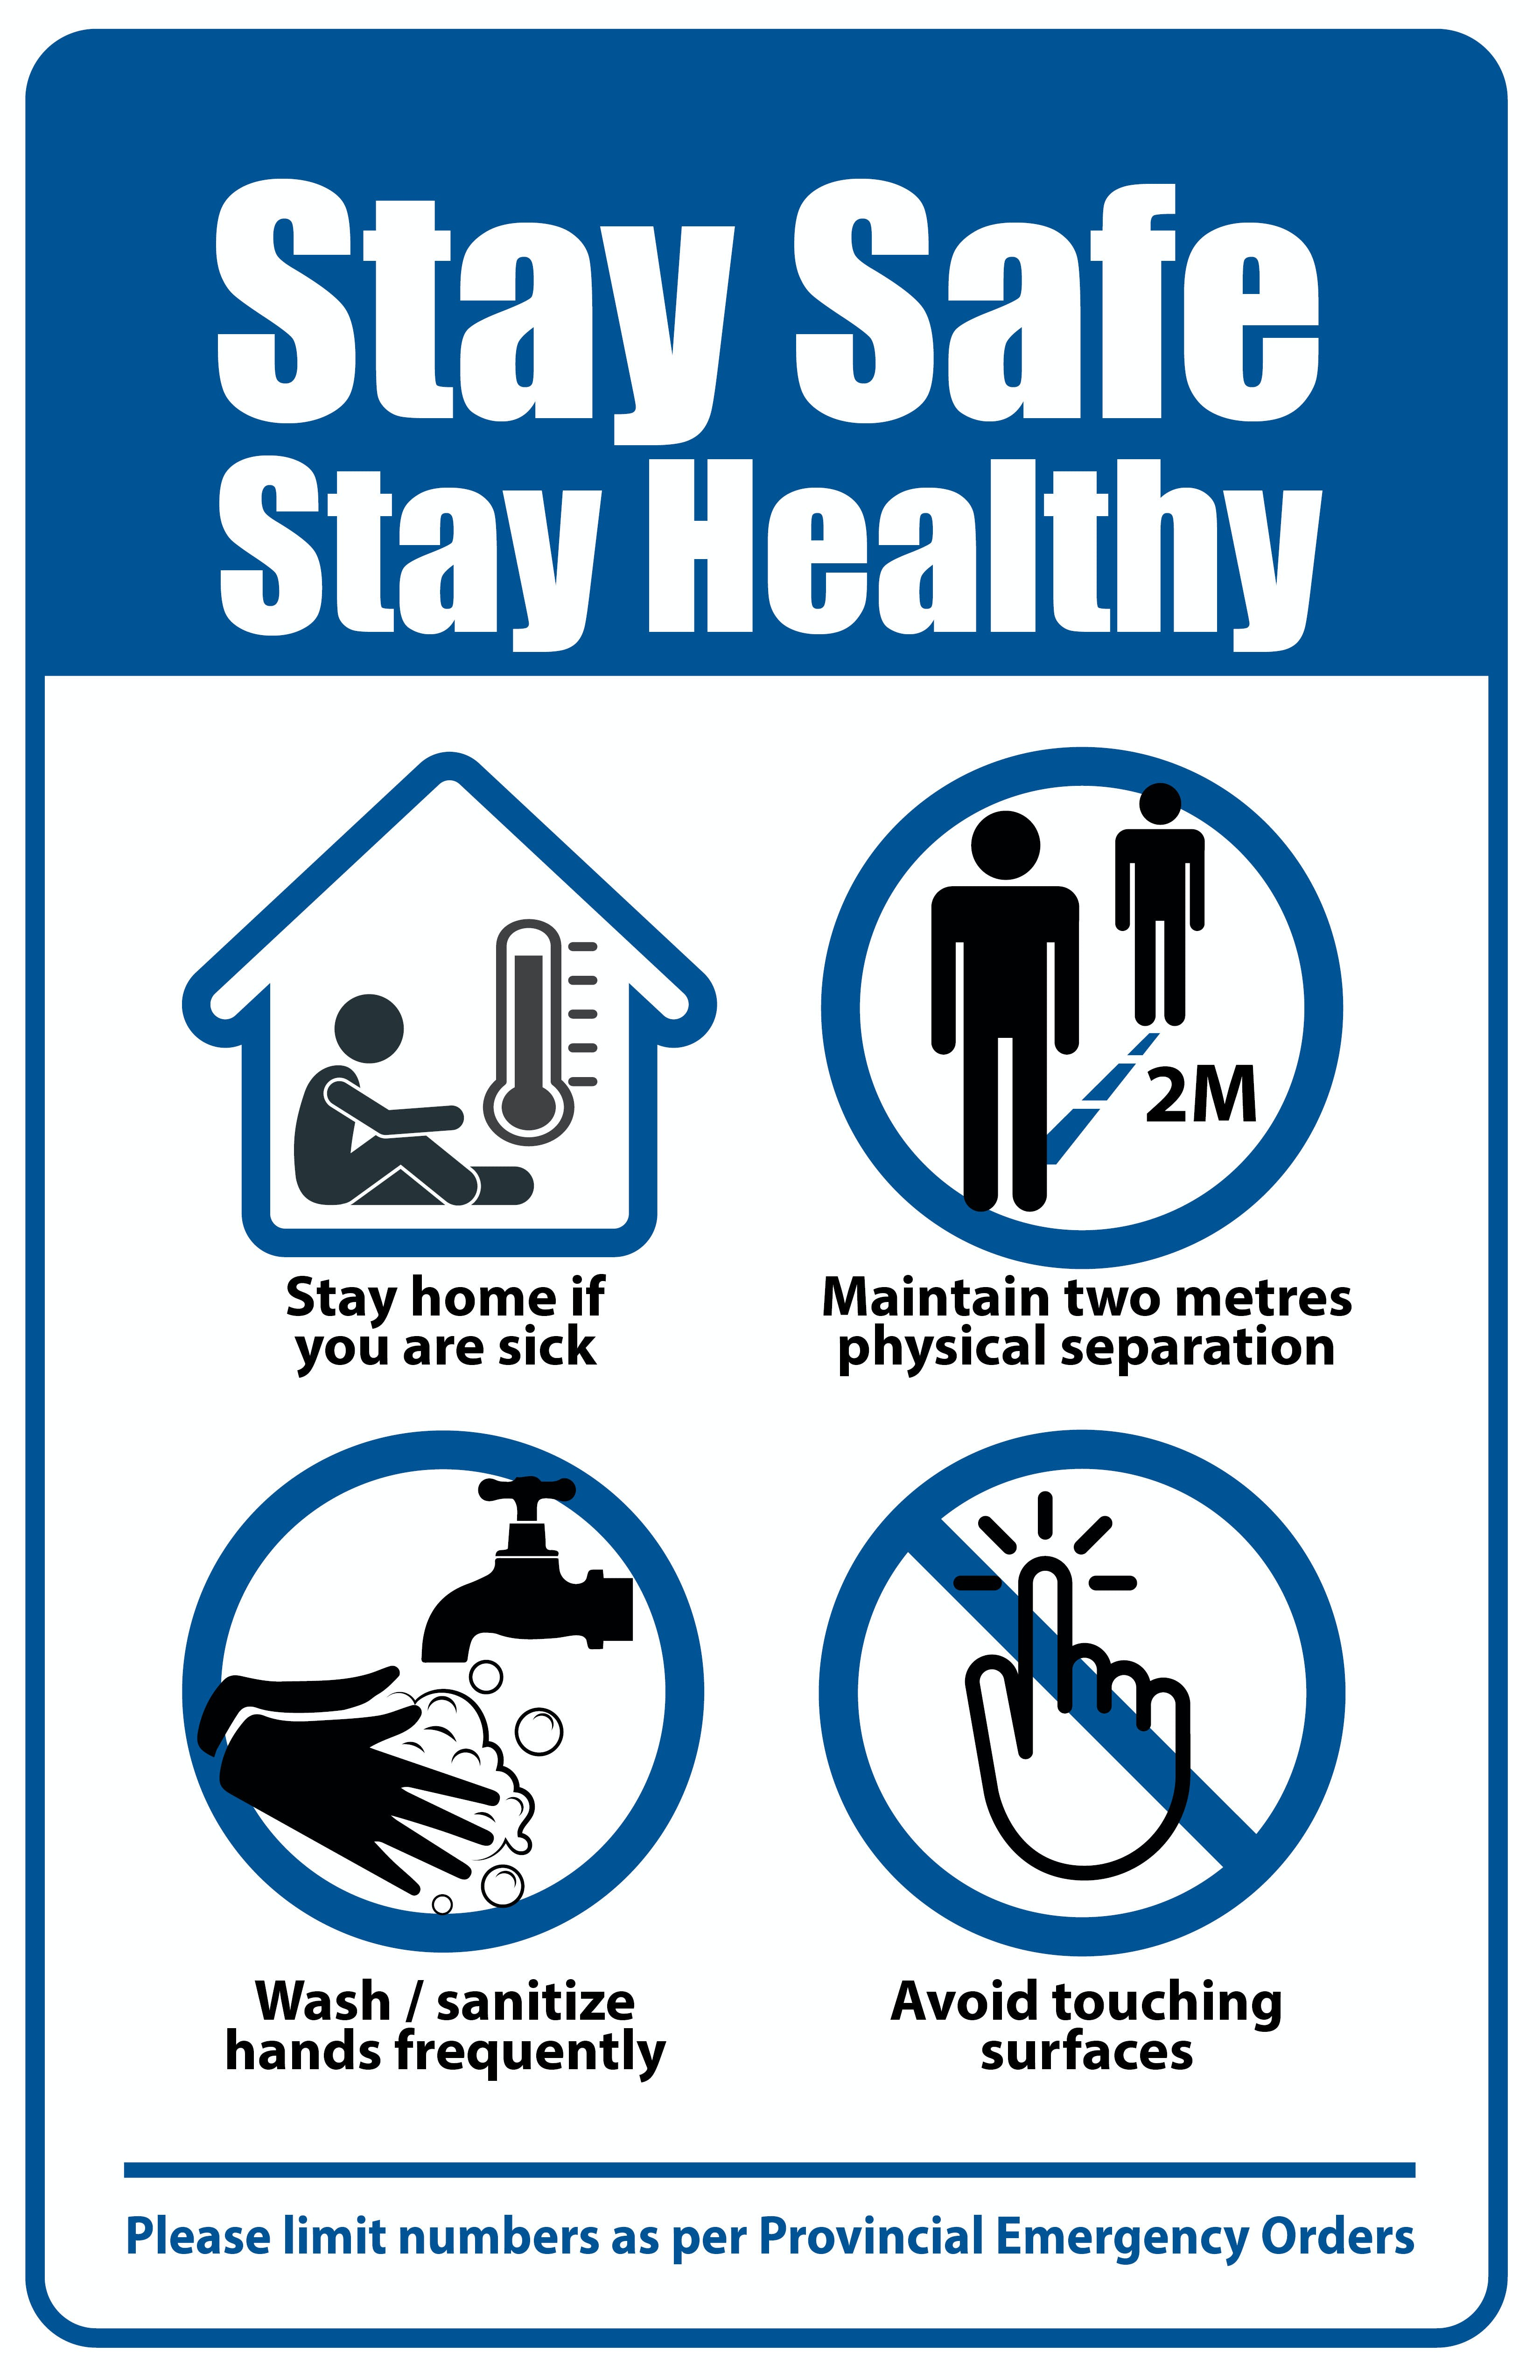 Stay Safe, Stay Healthy Pointers